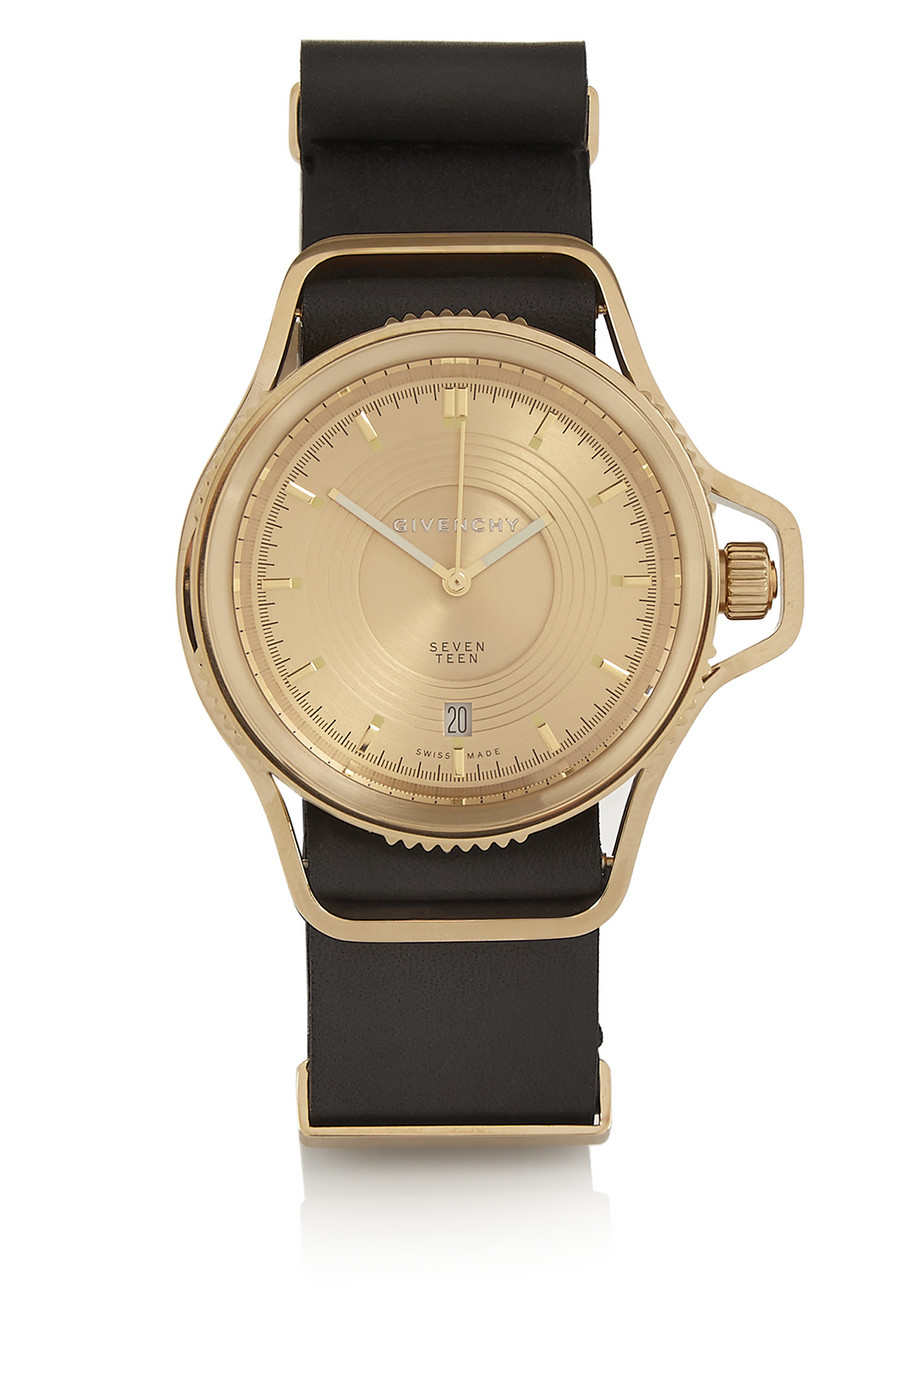 Lyst givenchy seventeen watch in gold pvd plated stainless steel in black for Watches gold